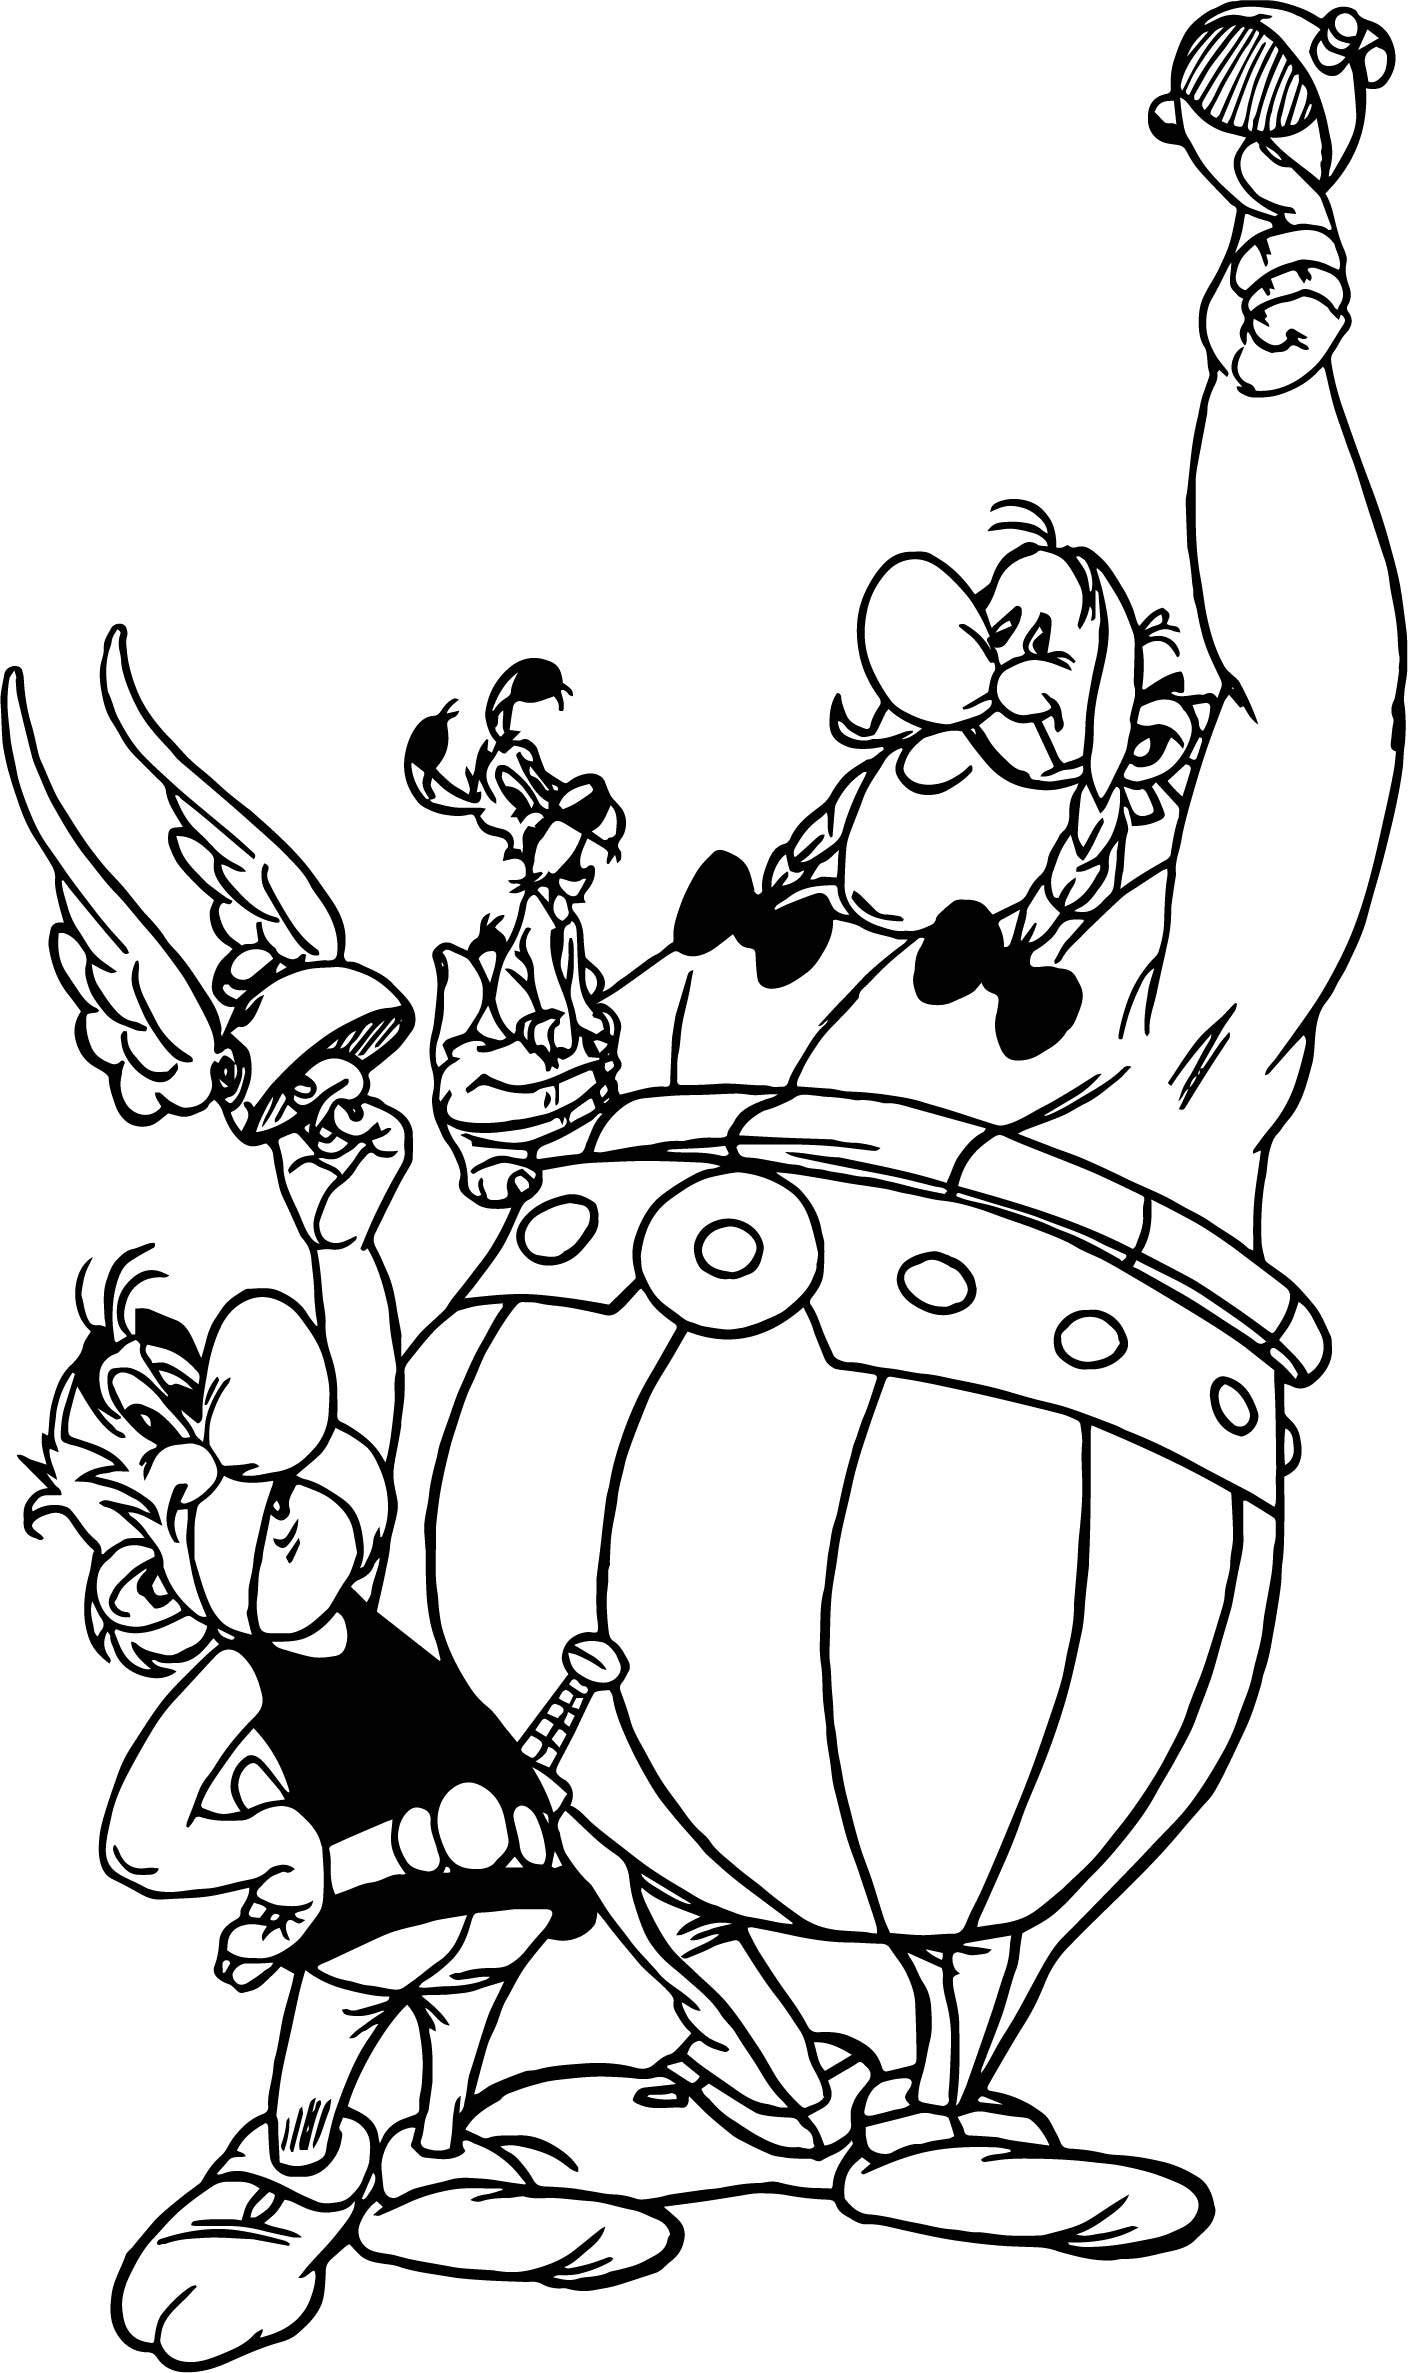 Asterix Obelix Dog Winner Coloring Page